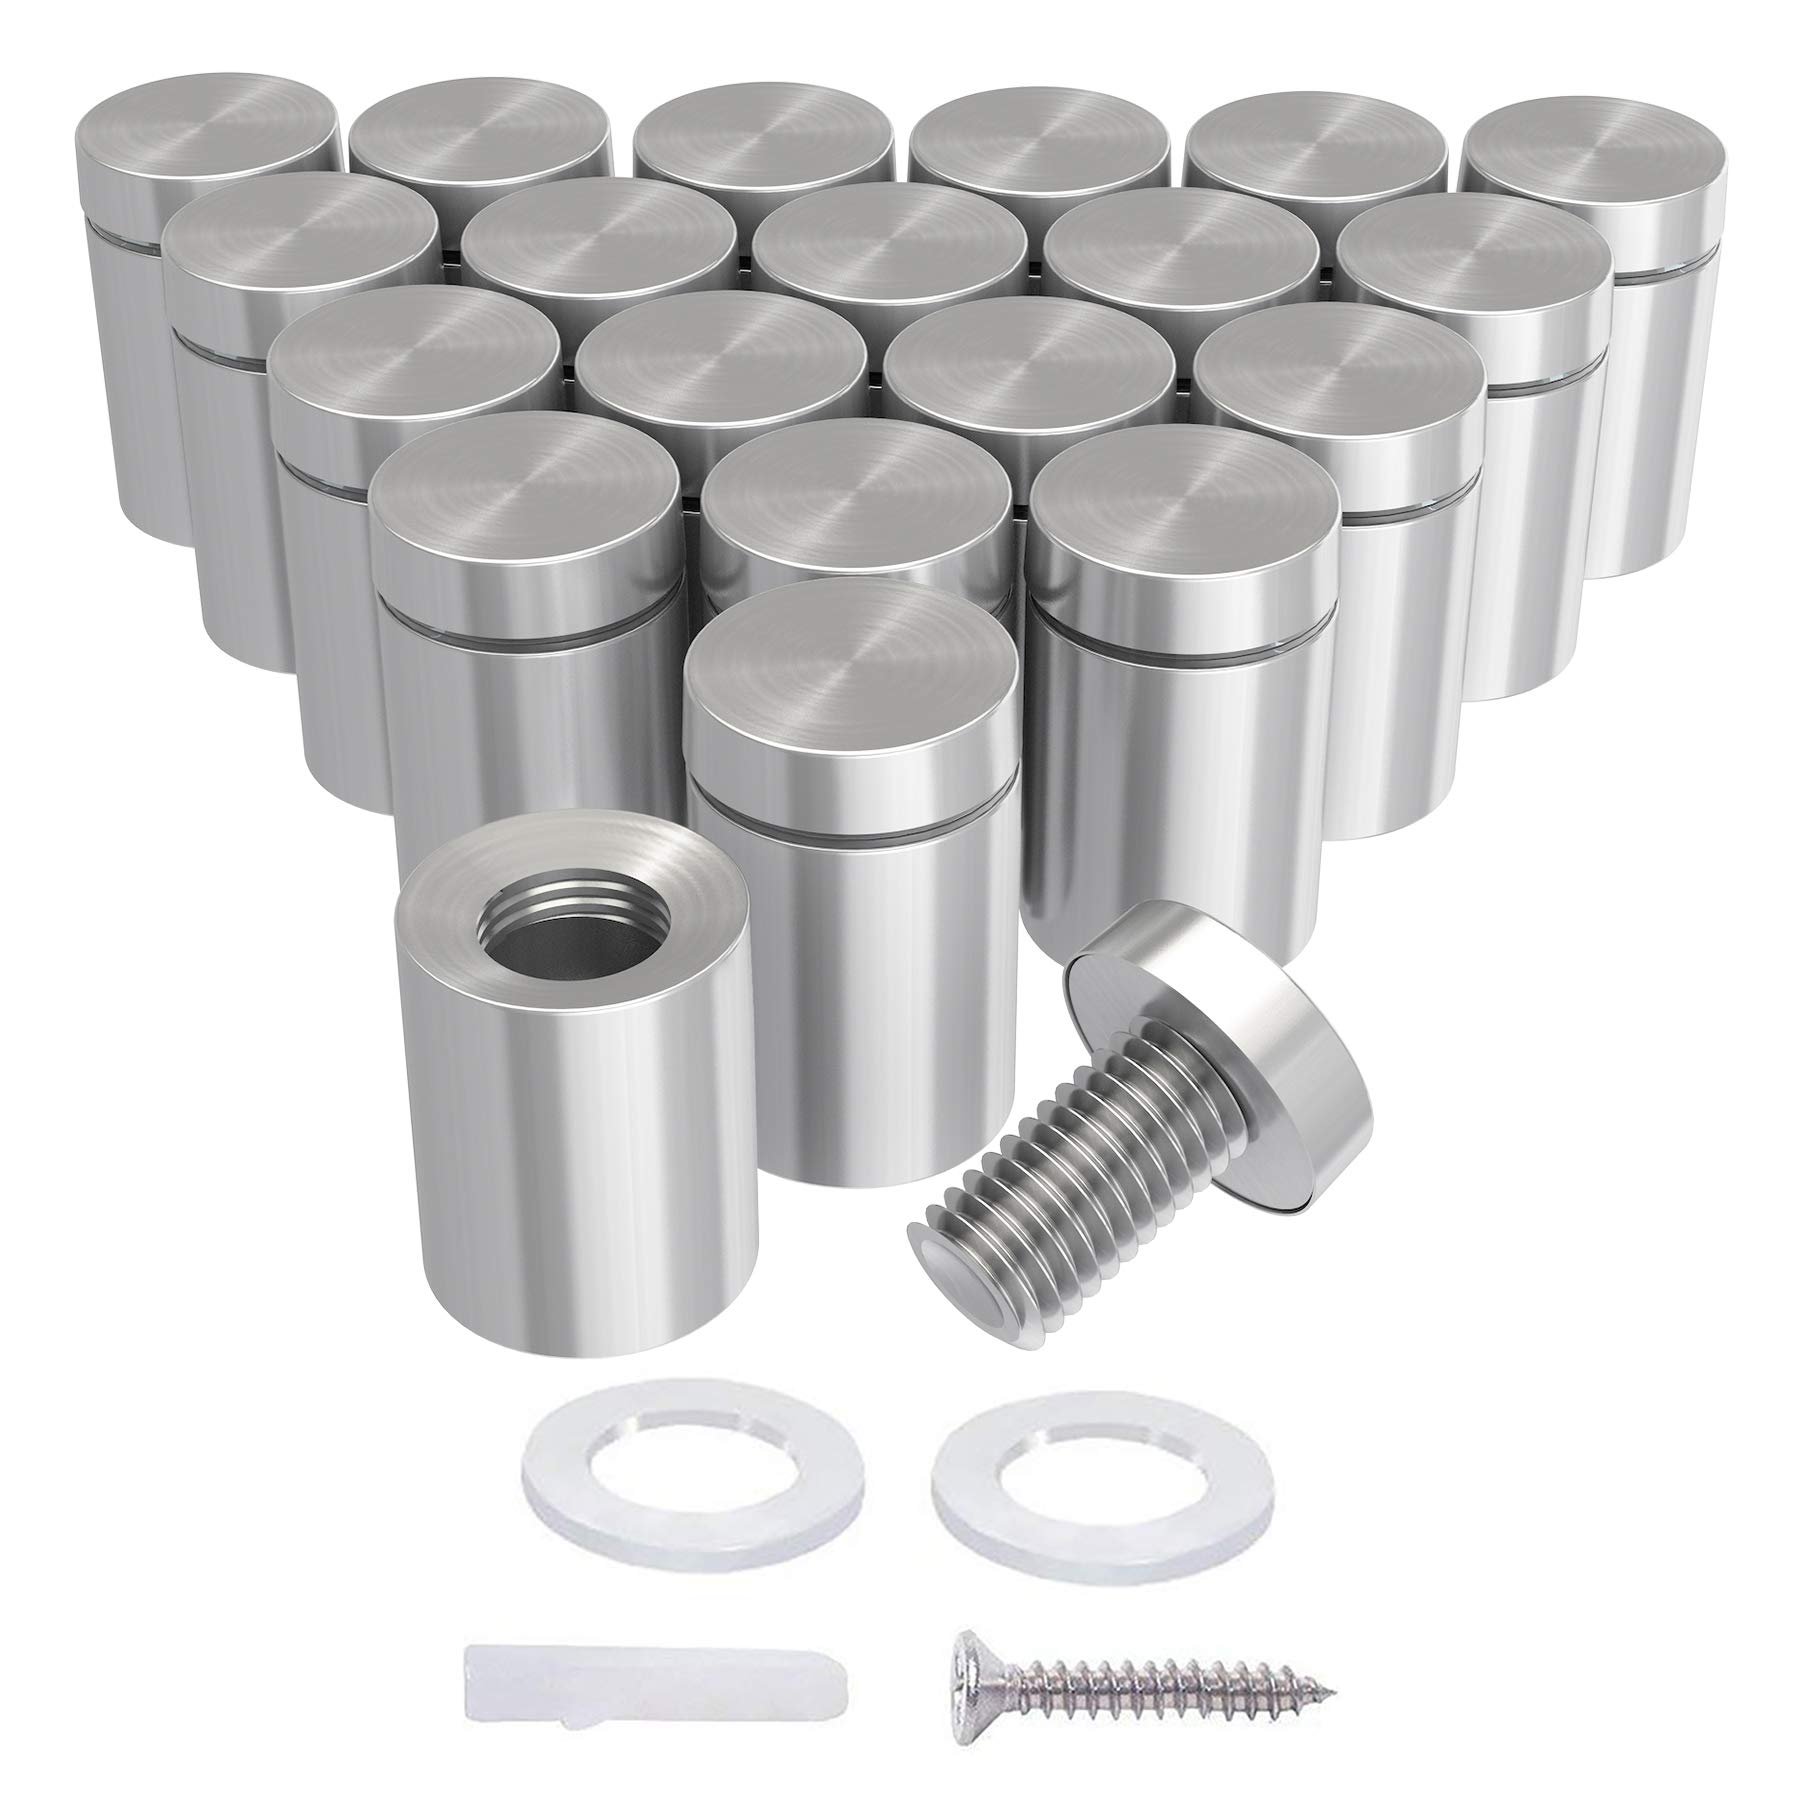 LuckIn 20 Pack Sign Standoff Screws 1/2 x 1 1/5 in, Acrylic Standoff Mounting Hardware, Stainless Steel Standoffs for Glass Panel, Plexiglass Picture